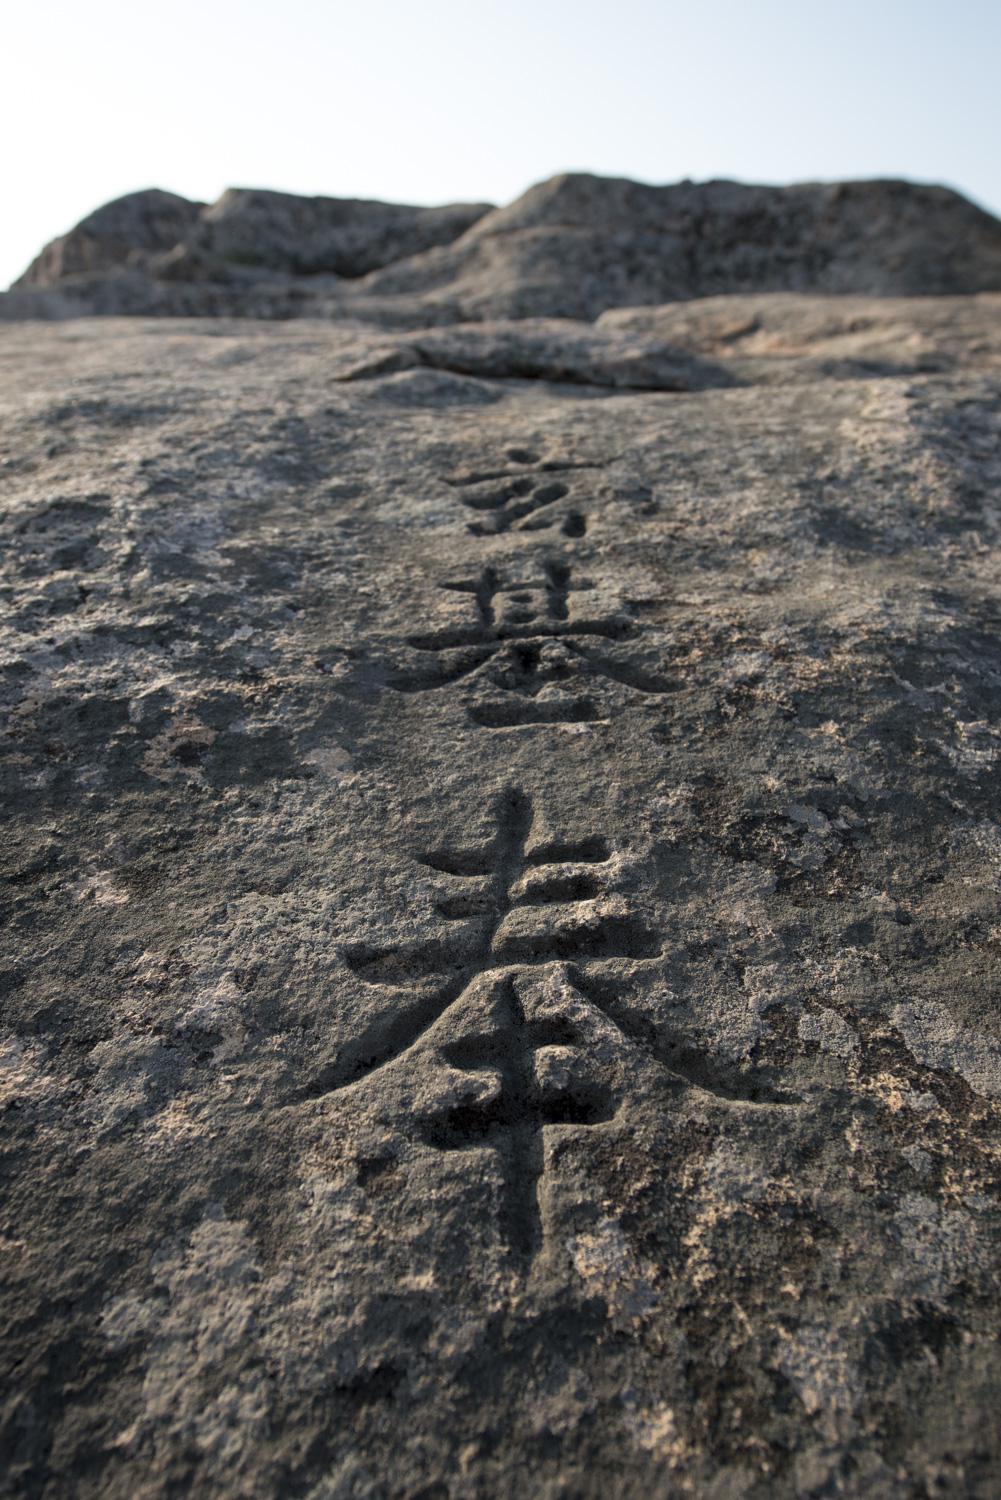 Chinese characters carved into the rock